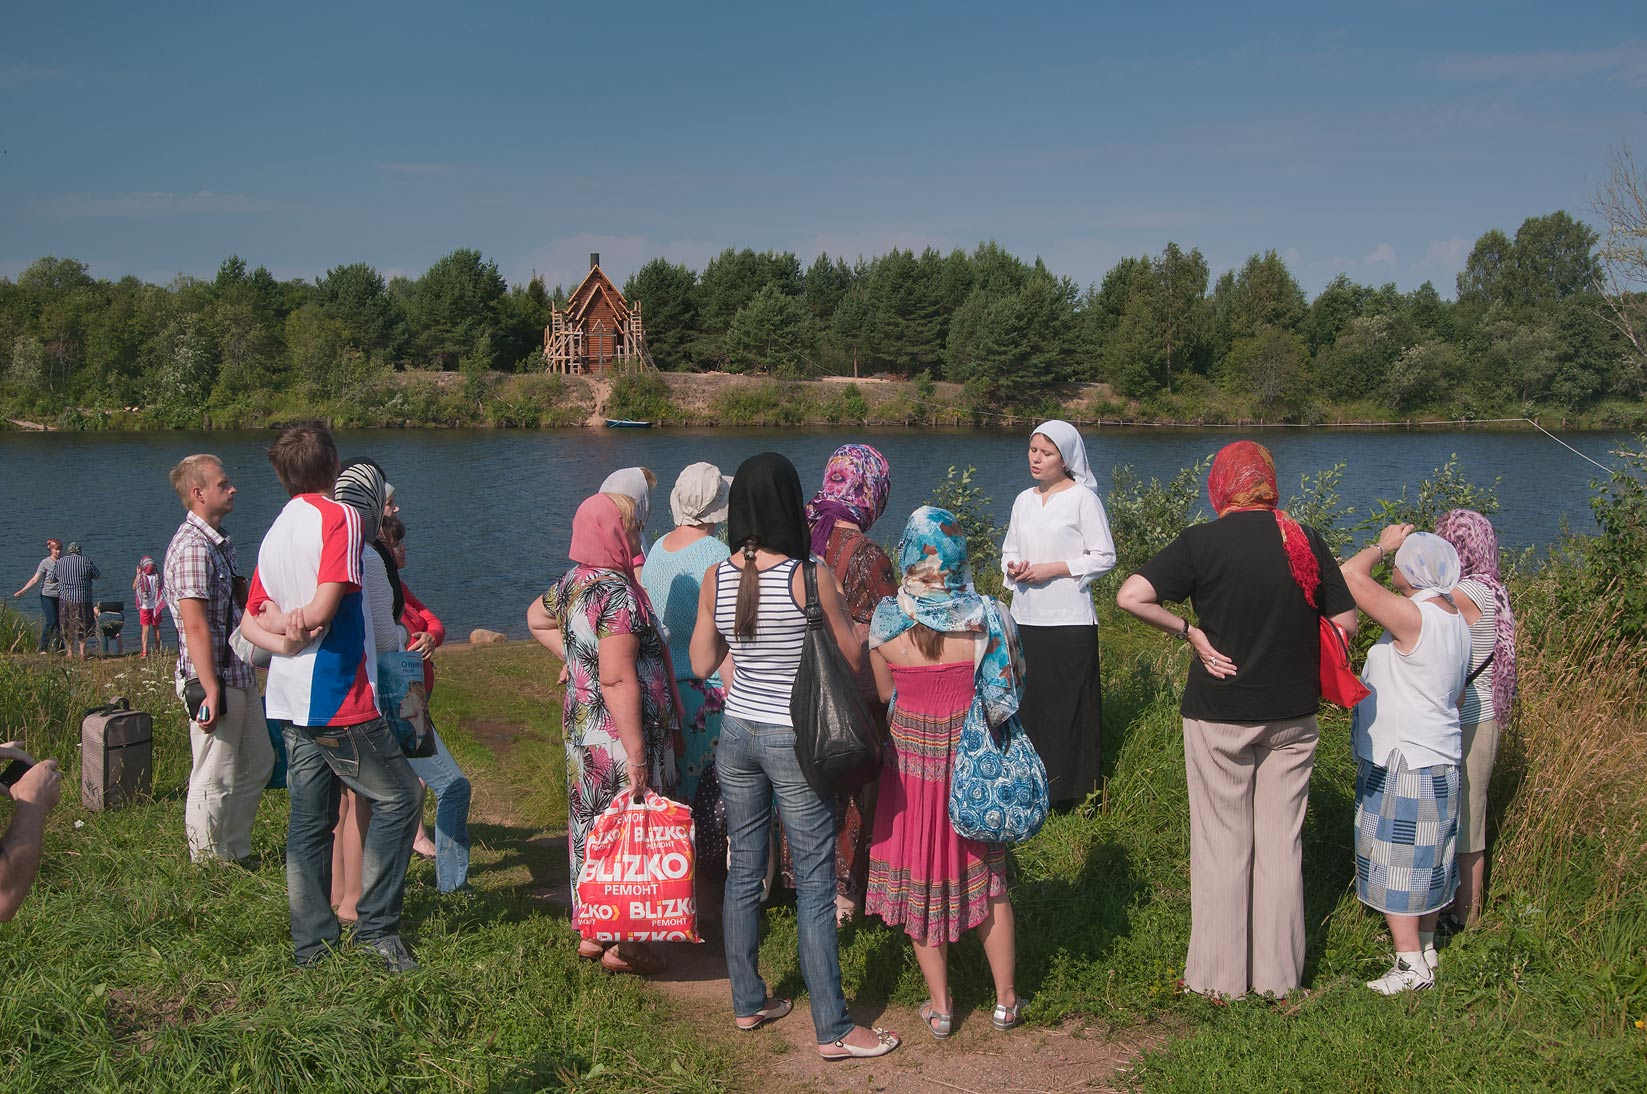 Excursion on a shore of Oyat River in Sovkhoz...Pole. Leningrad Region, Russia